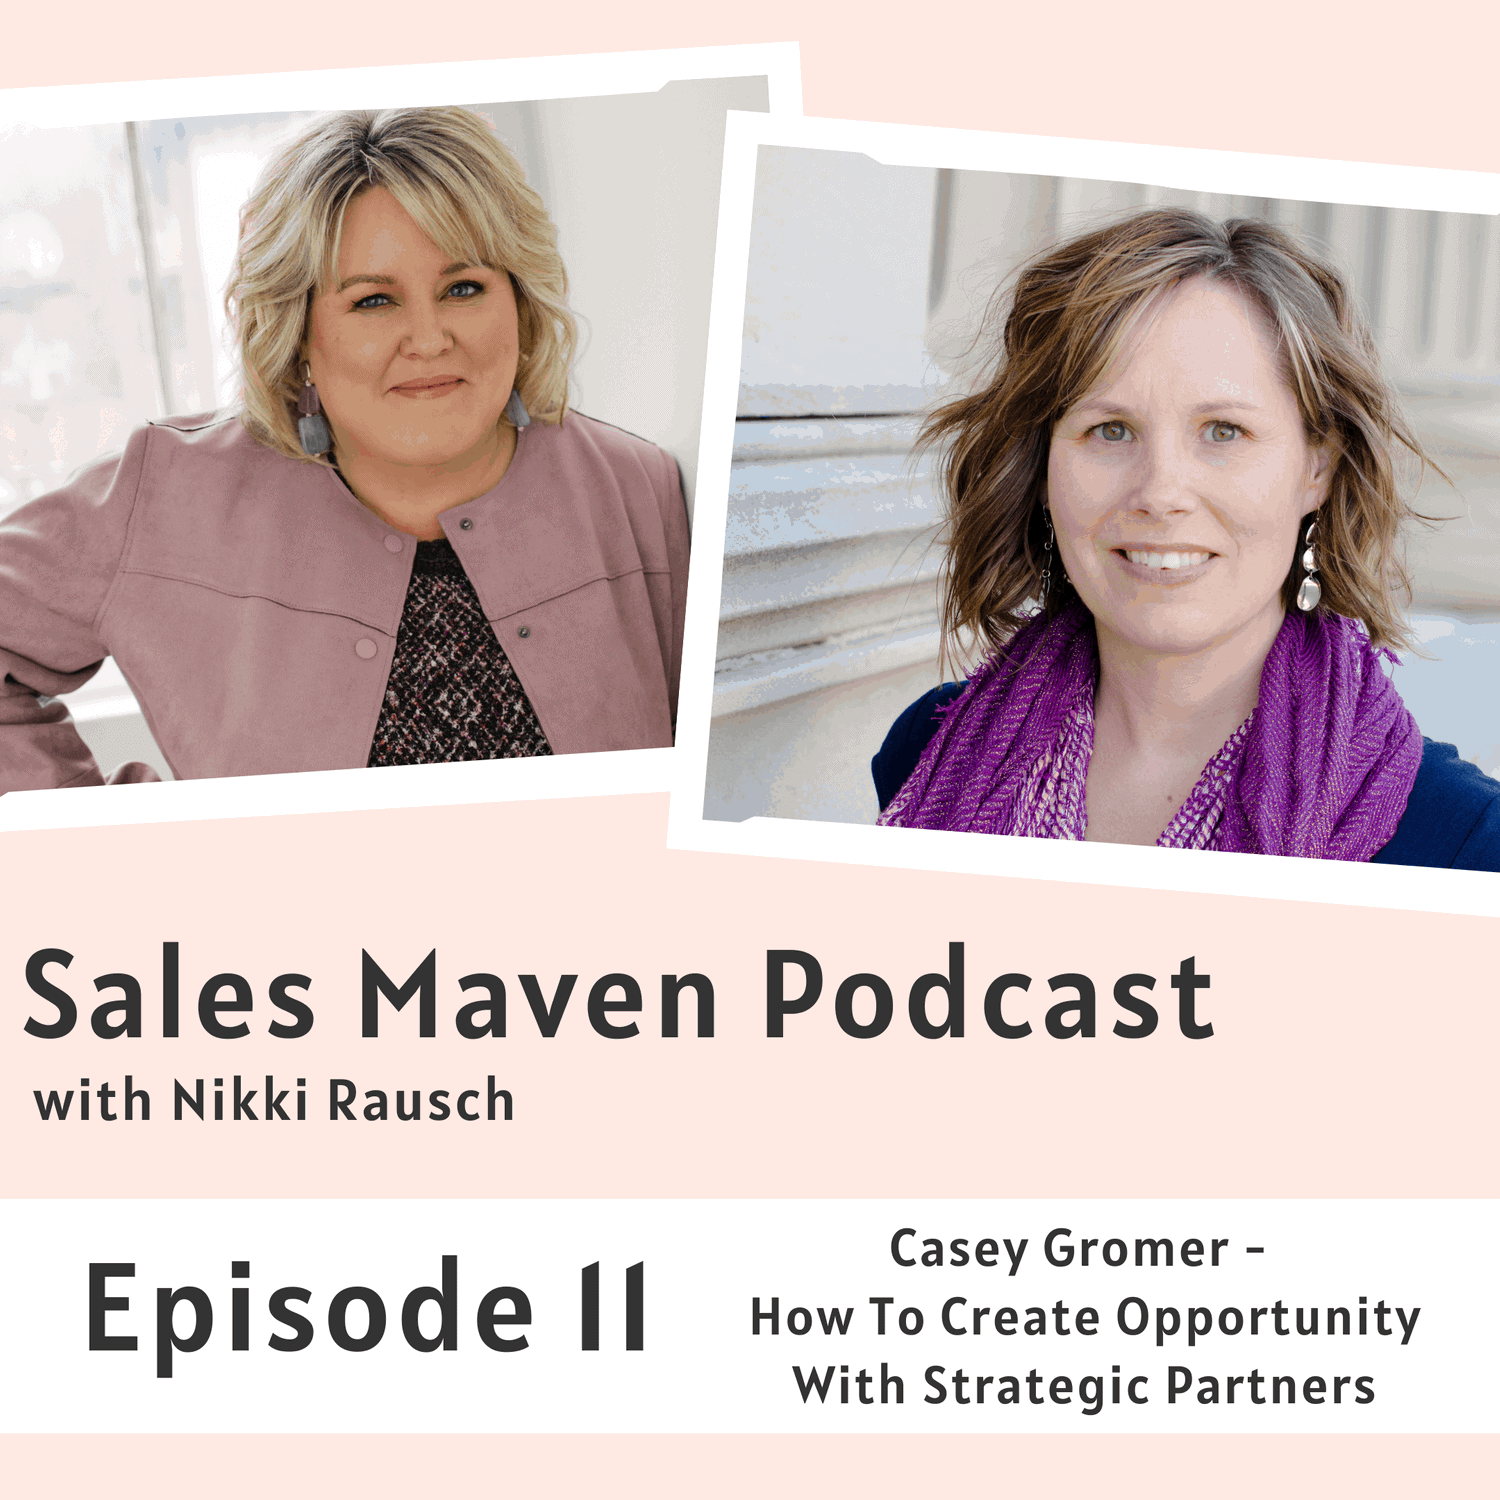 How to create opportunity with strategic partners with Casey Gromer